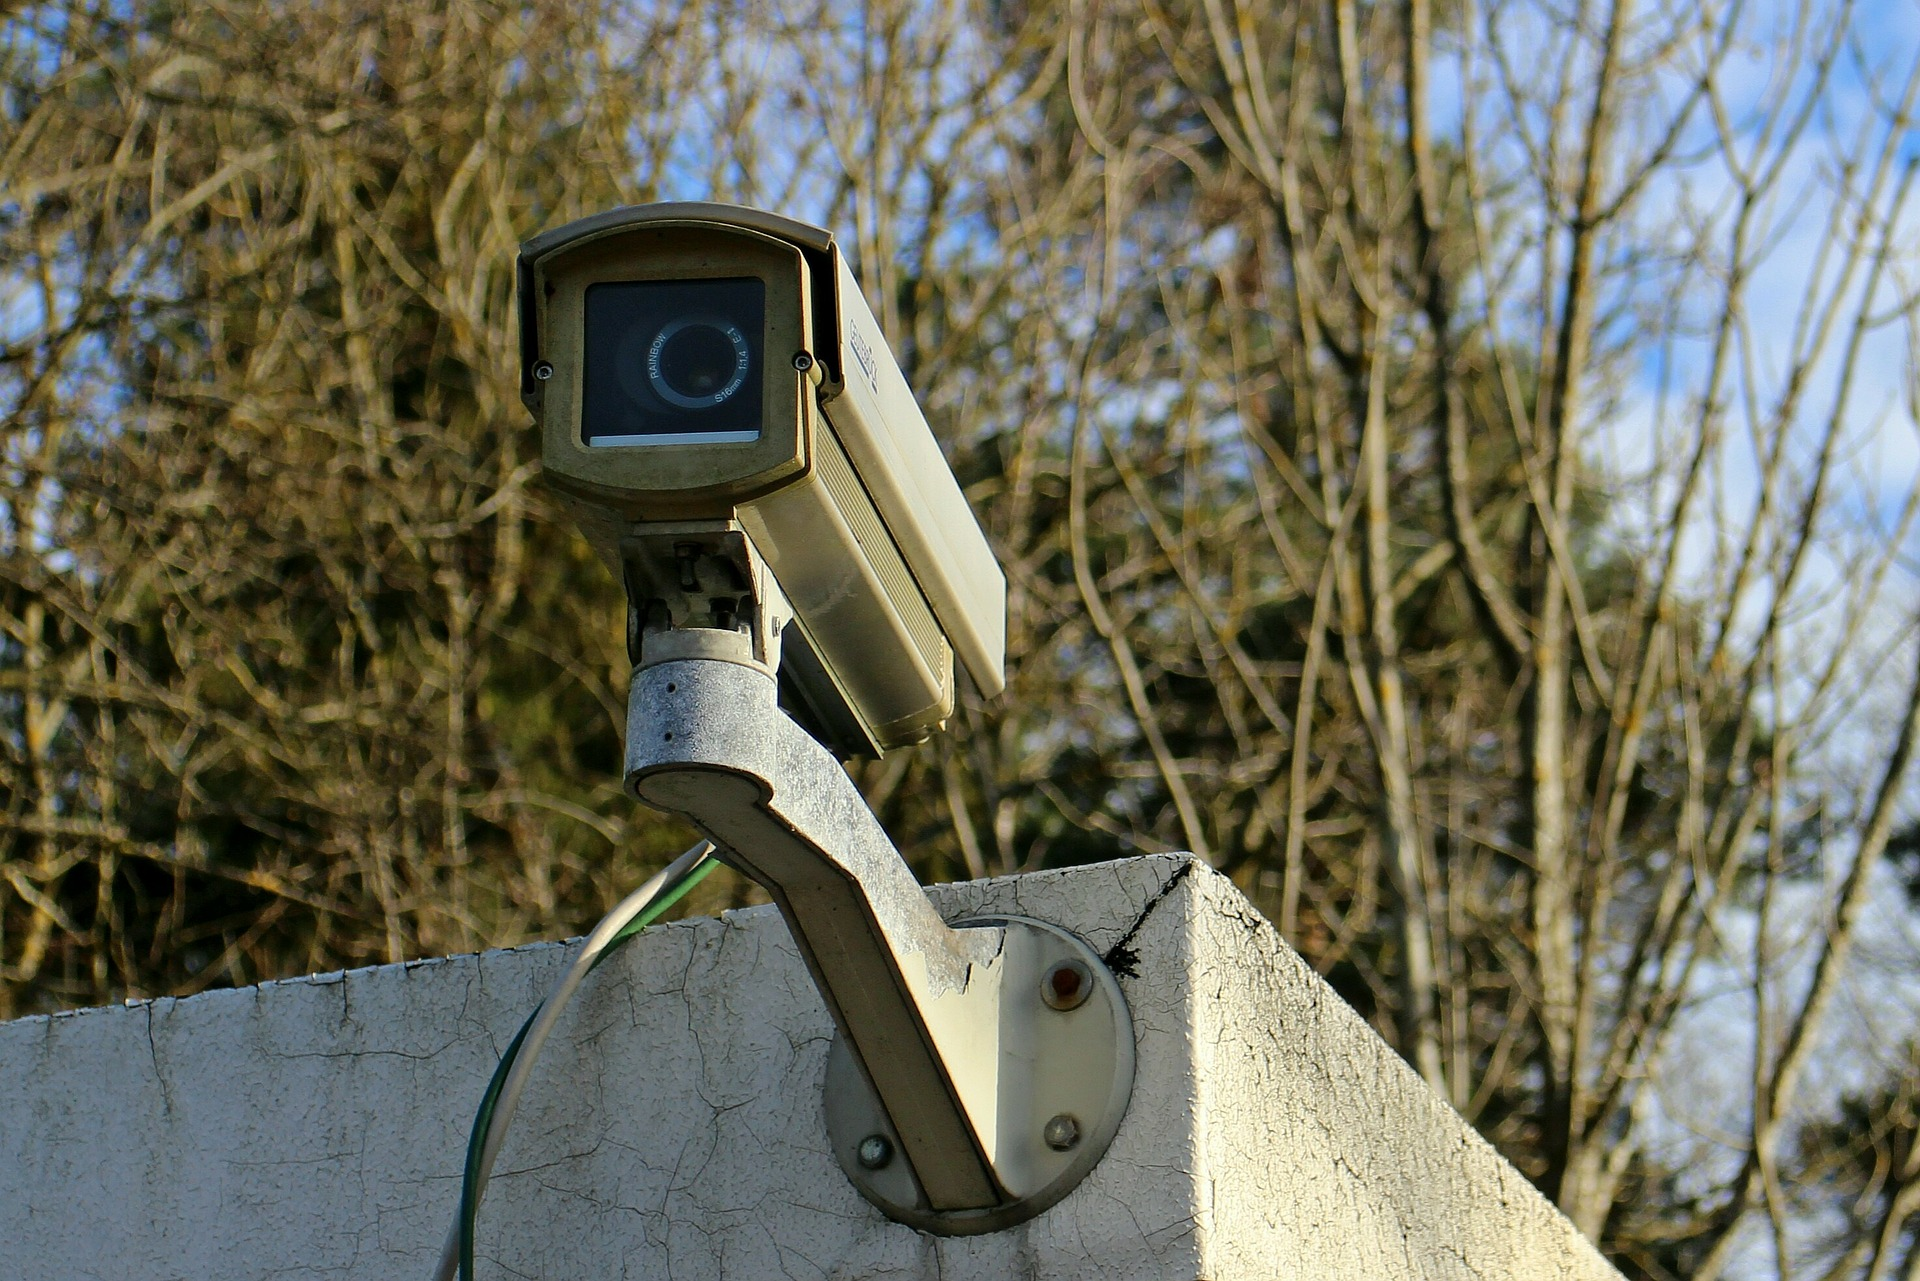 Caught on Home Security Cameras facts